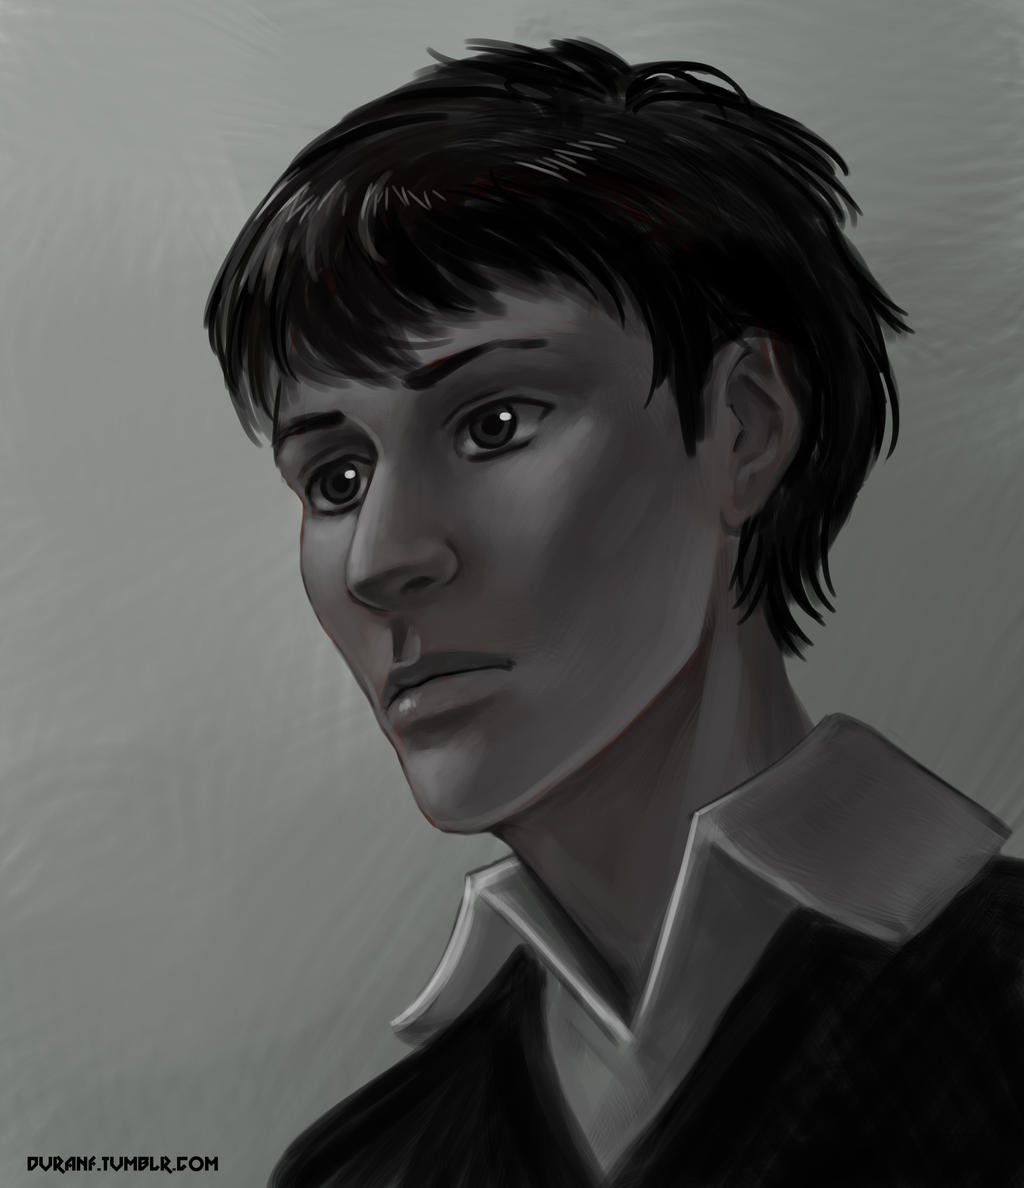 Bertolt Hoover Fan Art Related Keywords & Suggestions